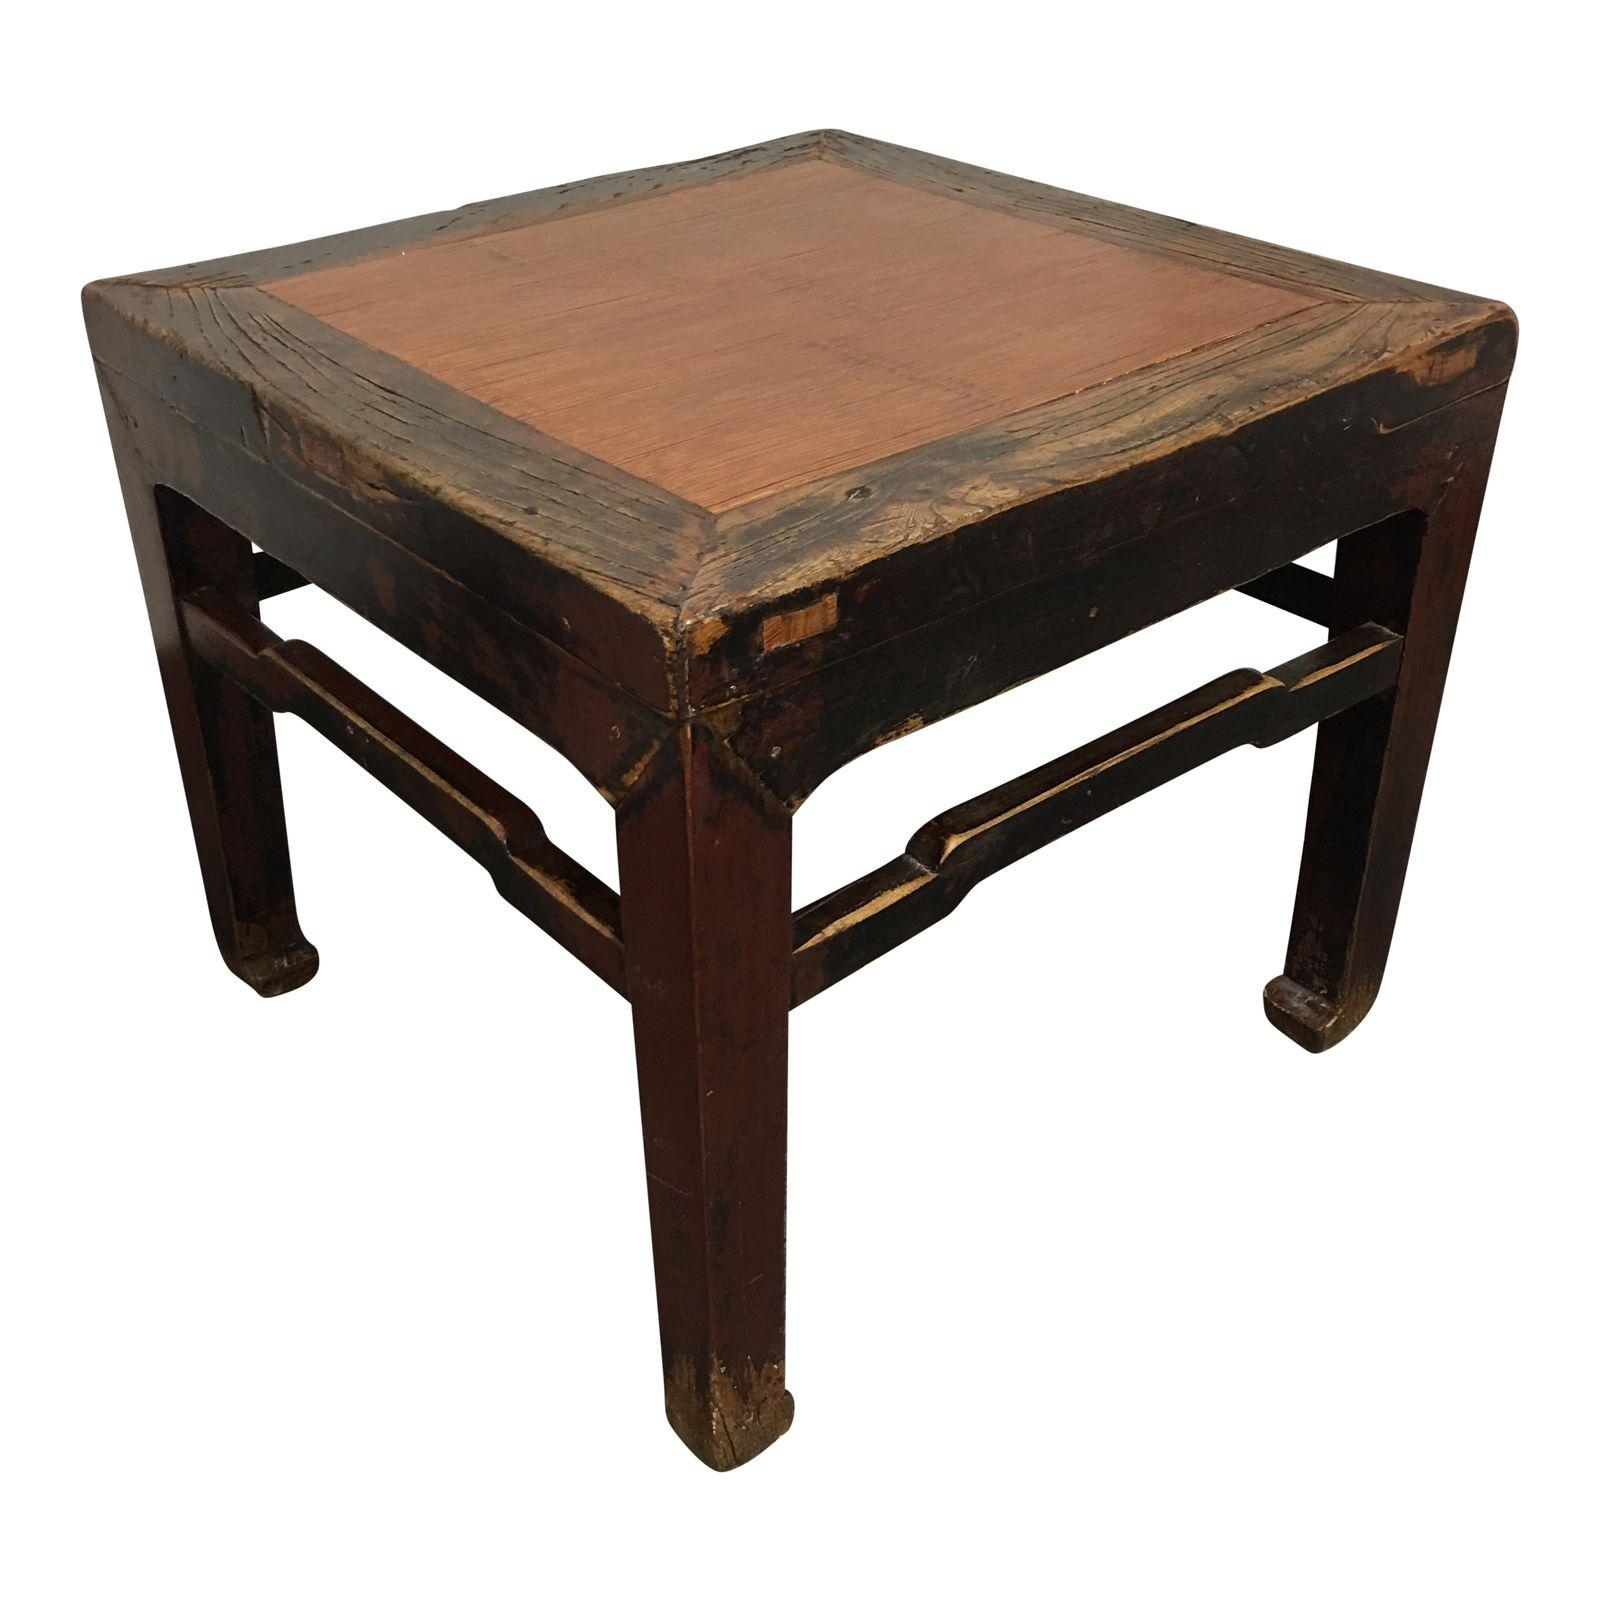 Bamboo Table With Design: Antique Asian Bamboo & Wood Side Table